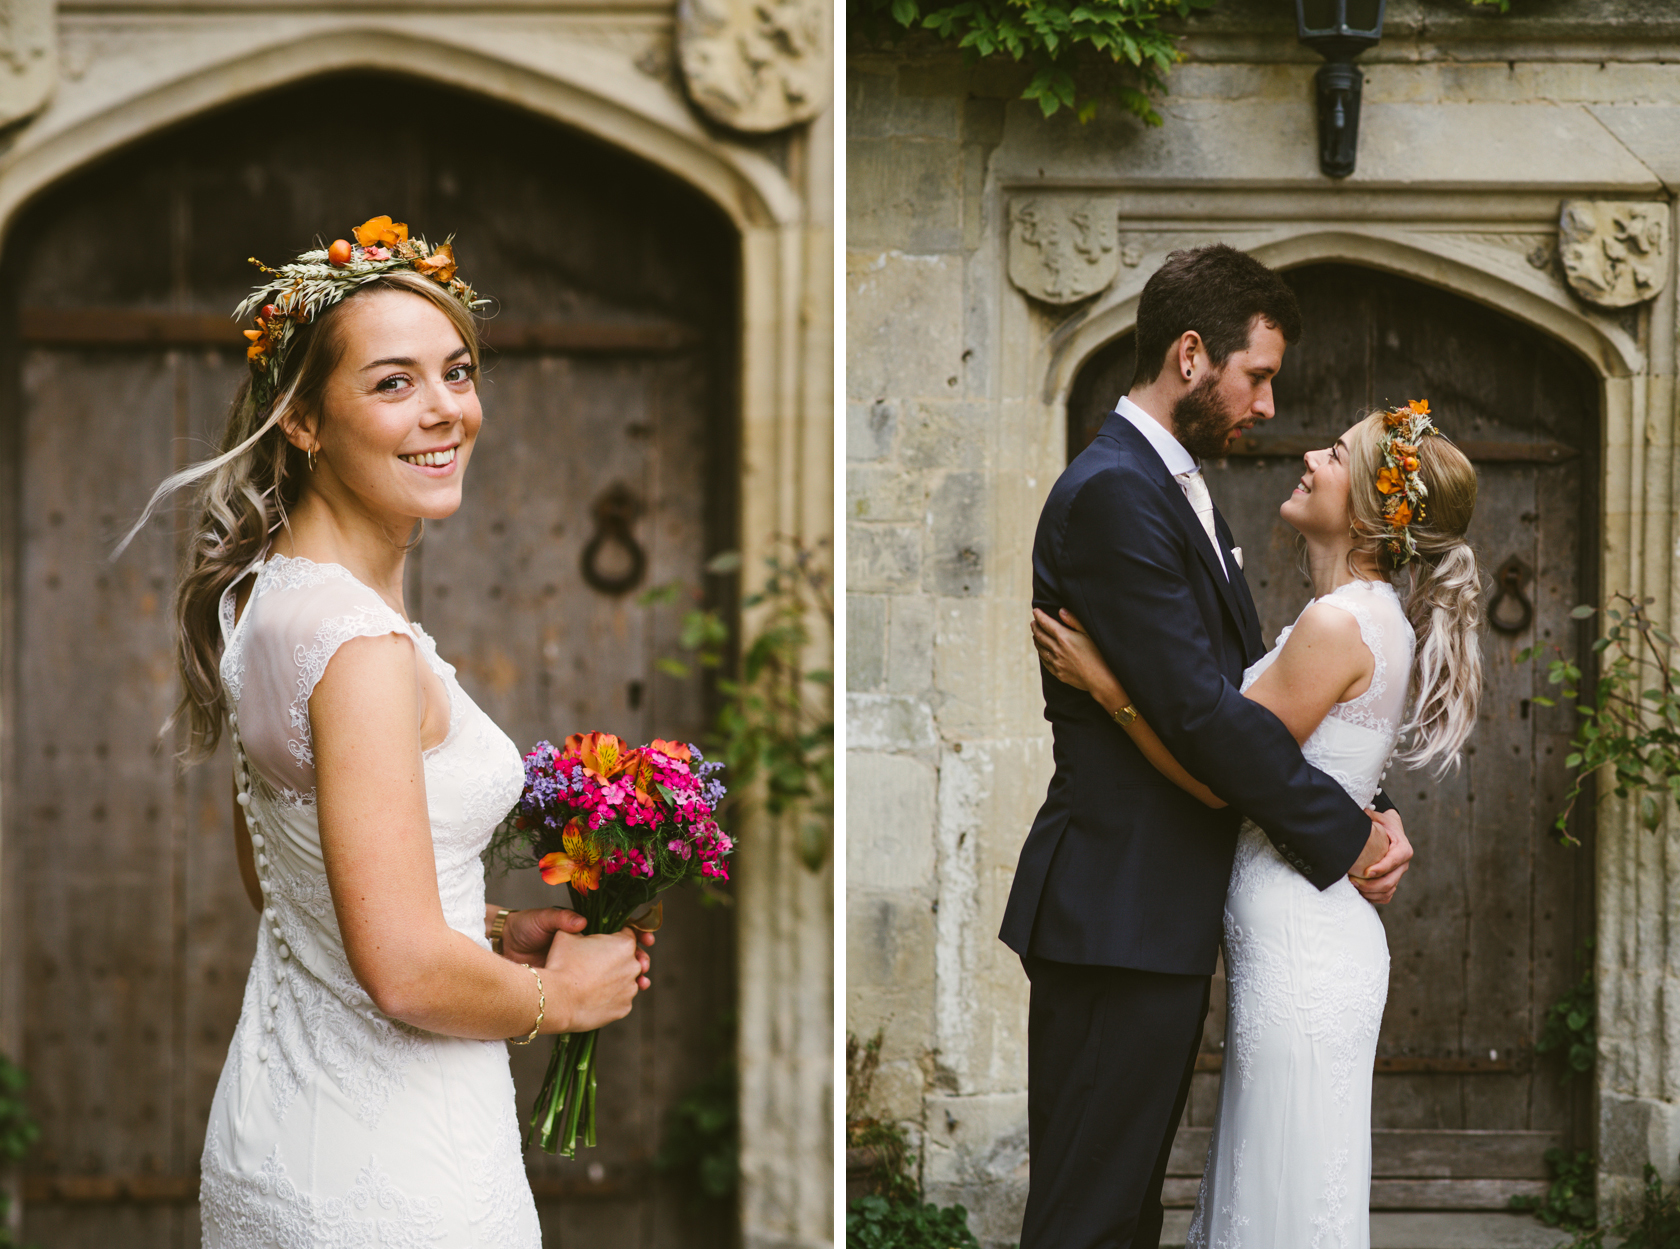 2_Lisa & Christy Abbey House Gardens Wiltshire Documentary Wedding Photographer-407.jpg